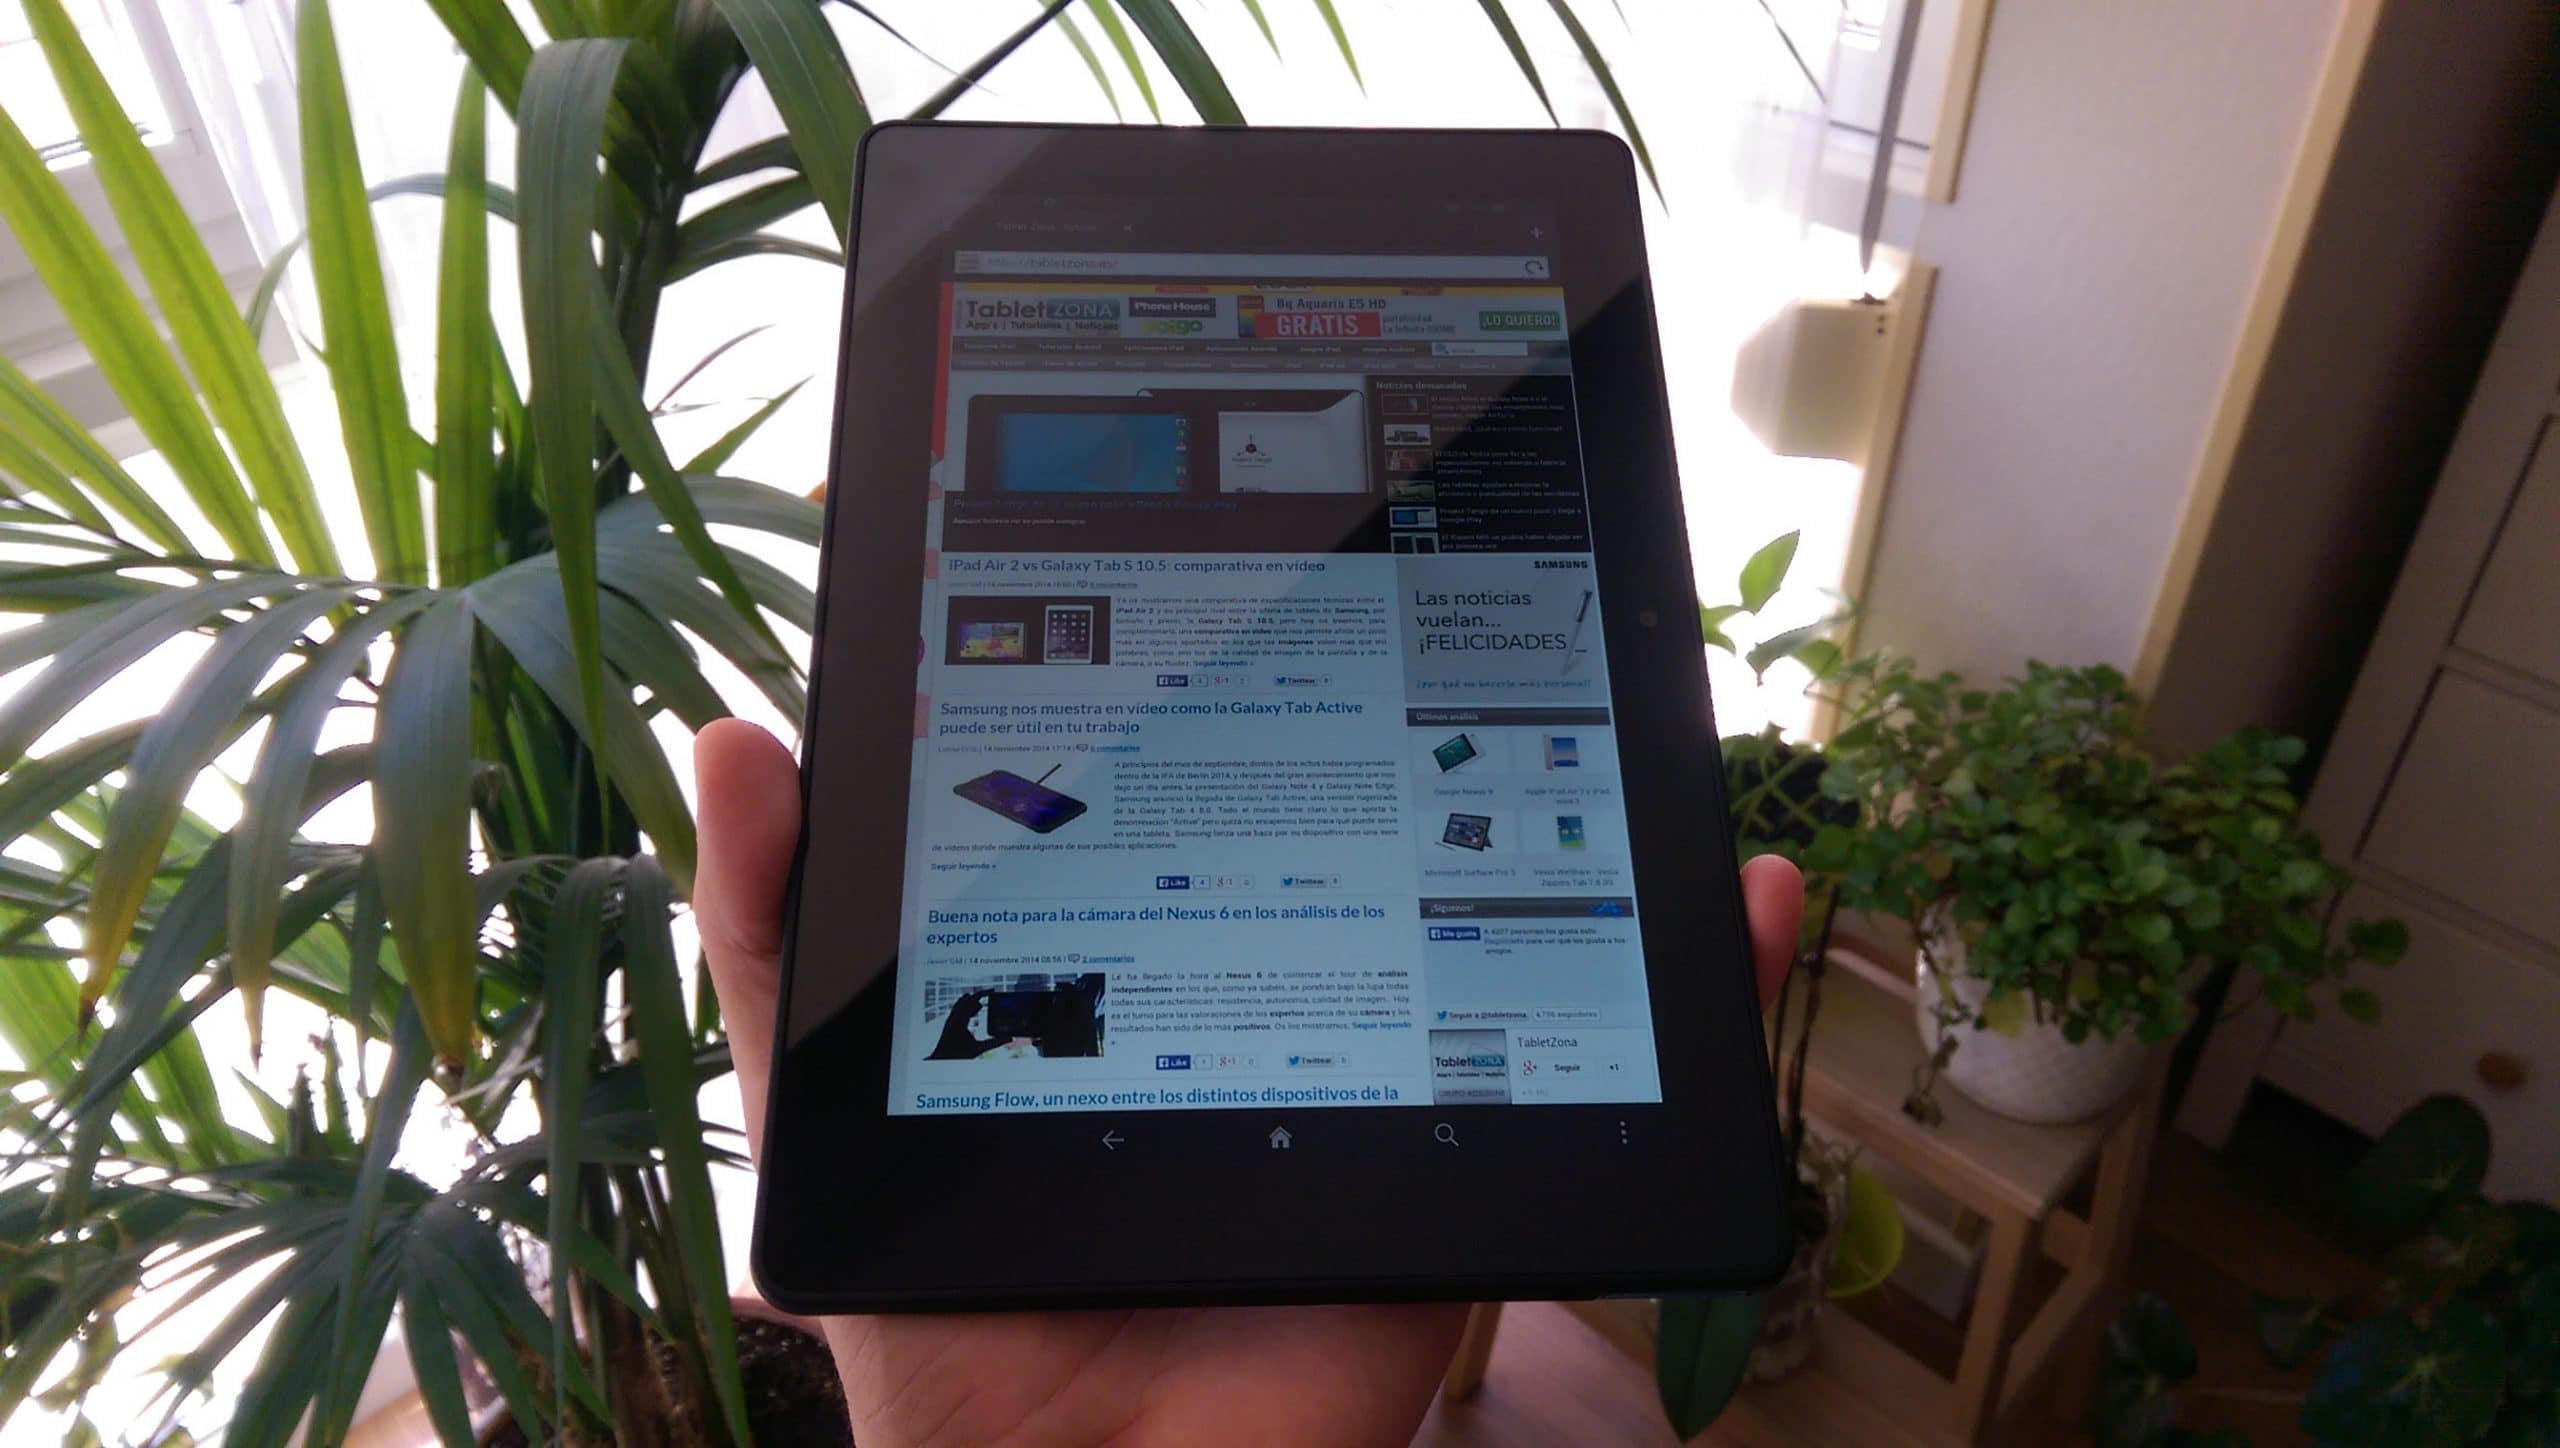 Kindle Fire HDX 8.9 2014 analisis tablet